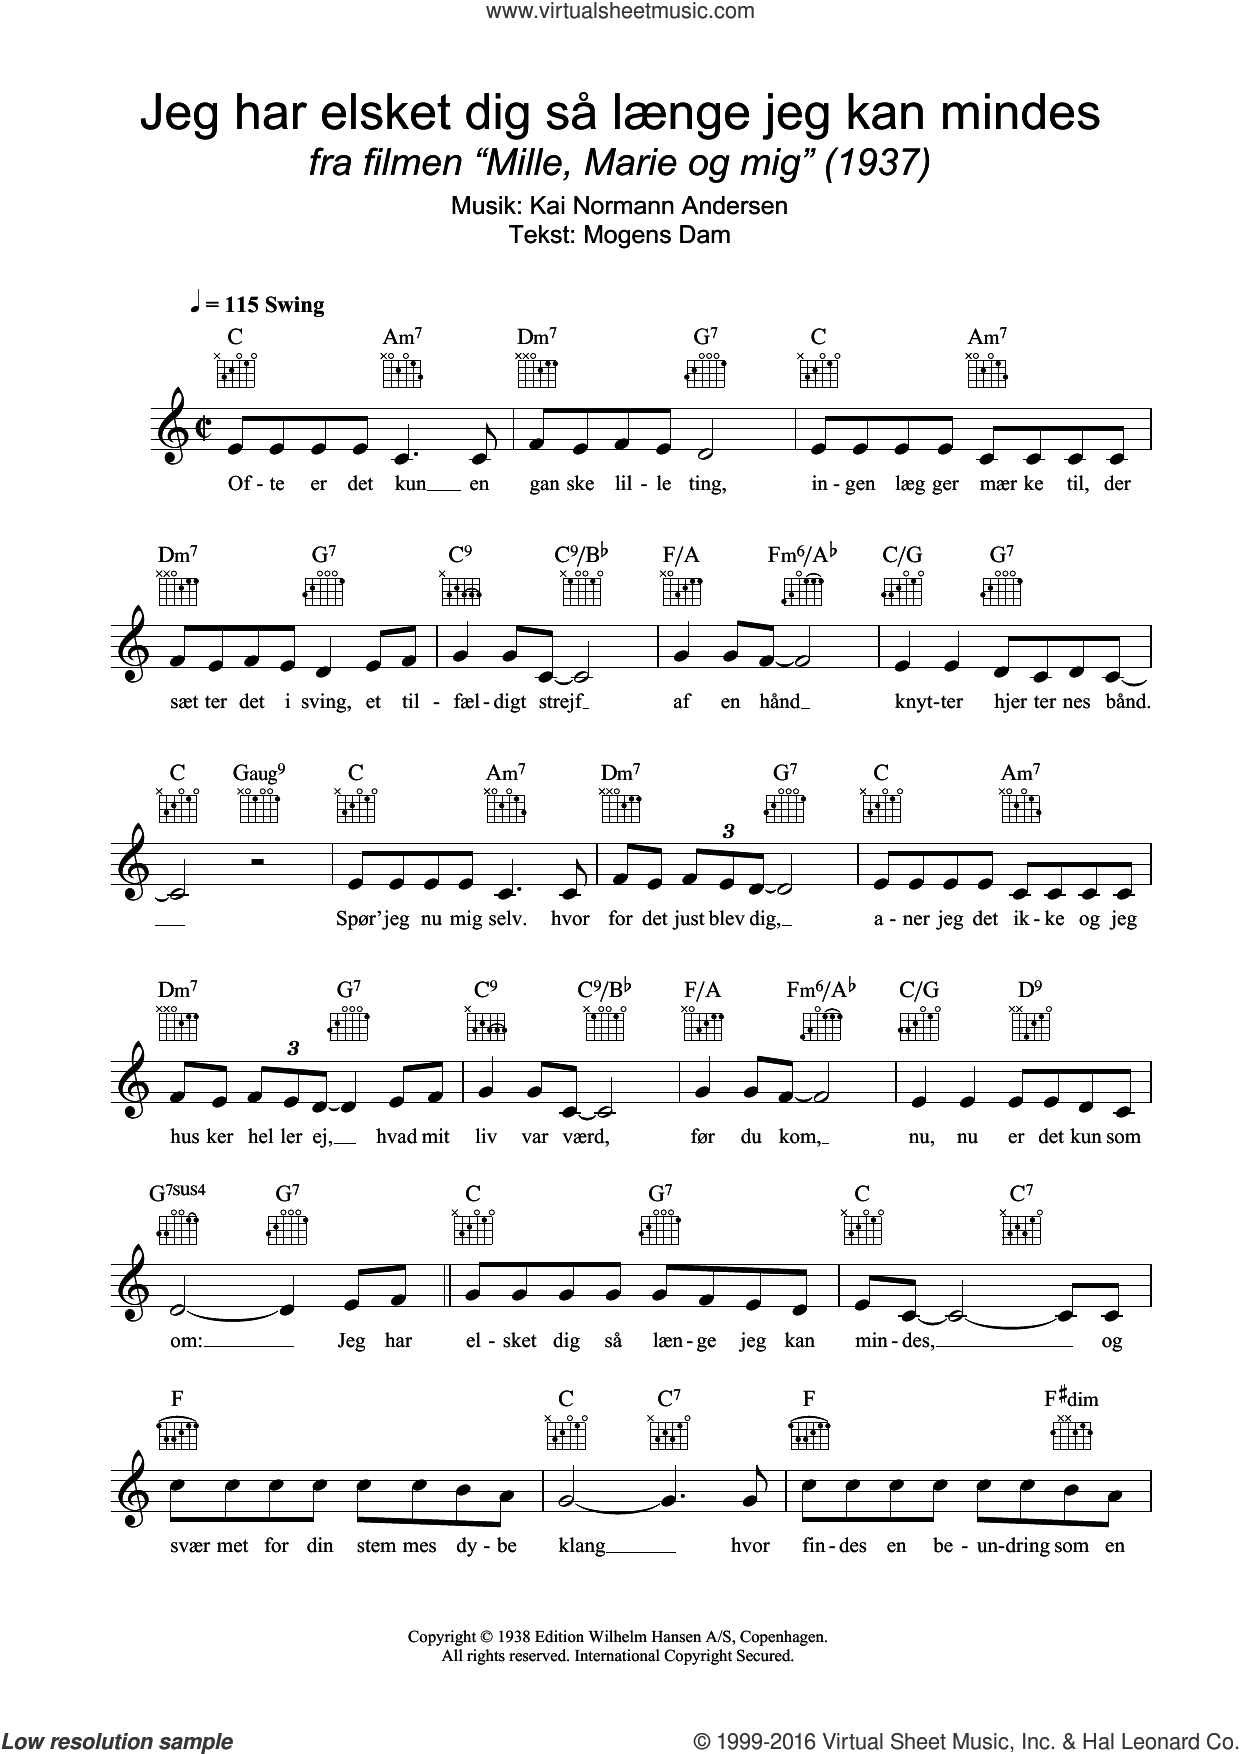 Jeg Har Elsket Dig Sa Laenge Jeg Kan Mindes sheet music for voice and other instruments (fake book) by Kai Normann Andersen. Score Image Preview.